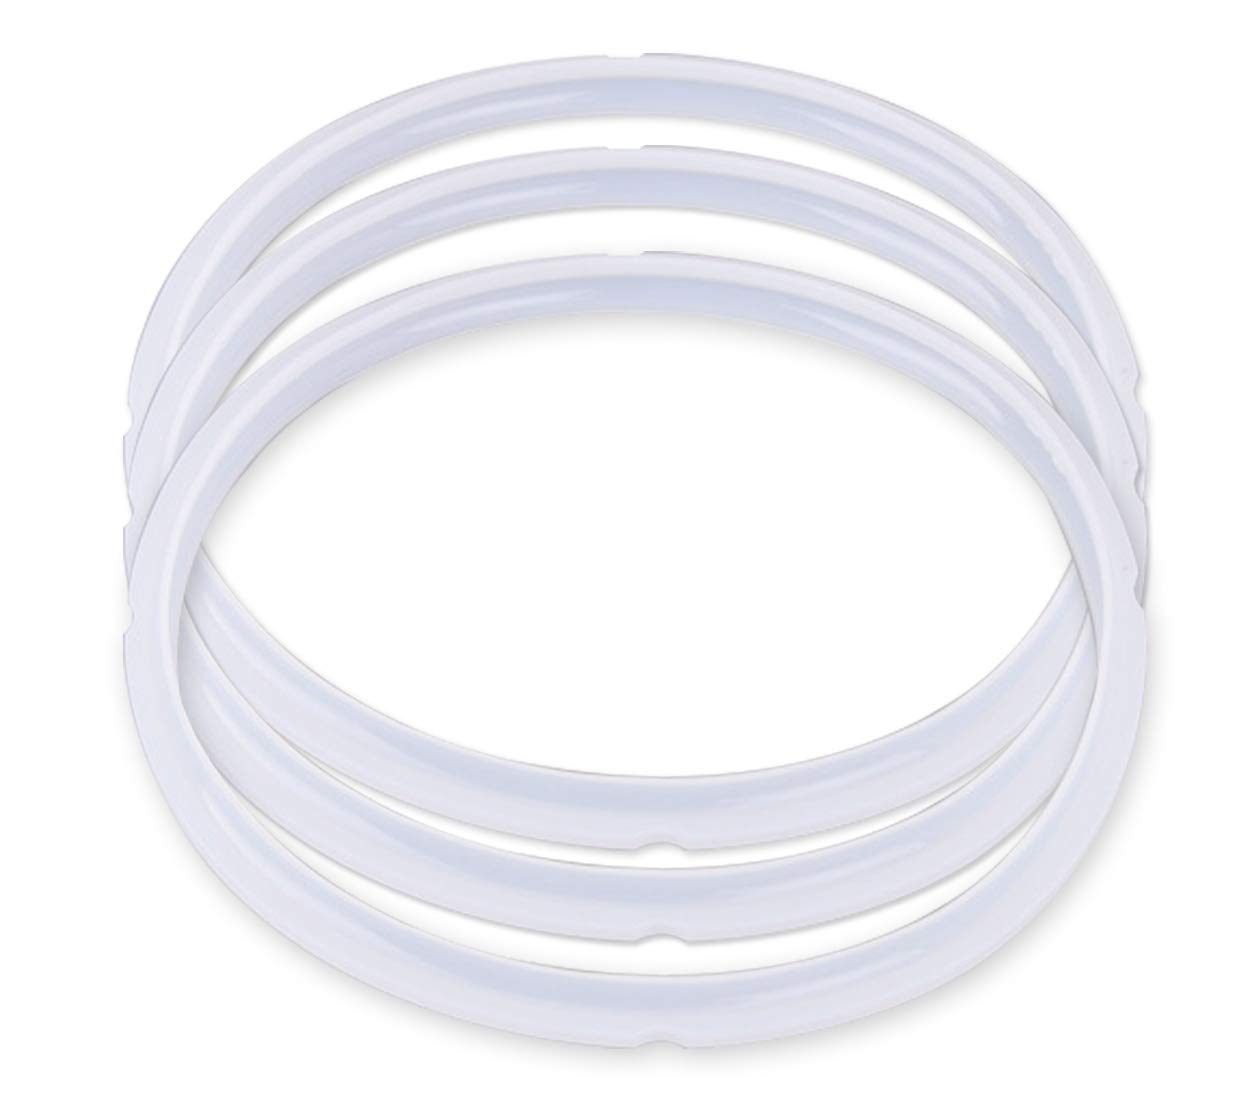 Sealing Ring Silicone Sealing Ring for Pressure Cookers 5 or 6 Quart (3 Pack)